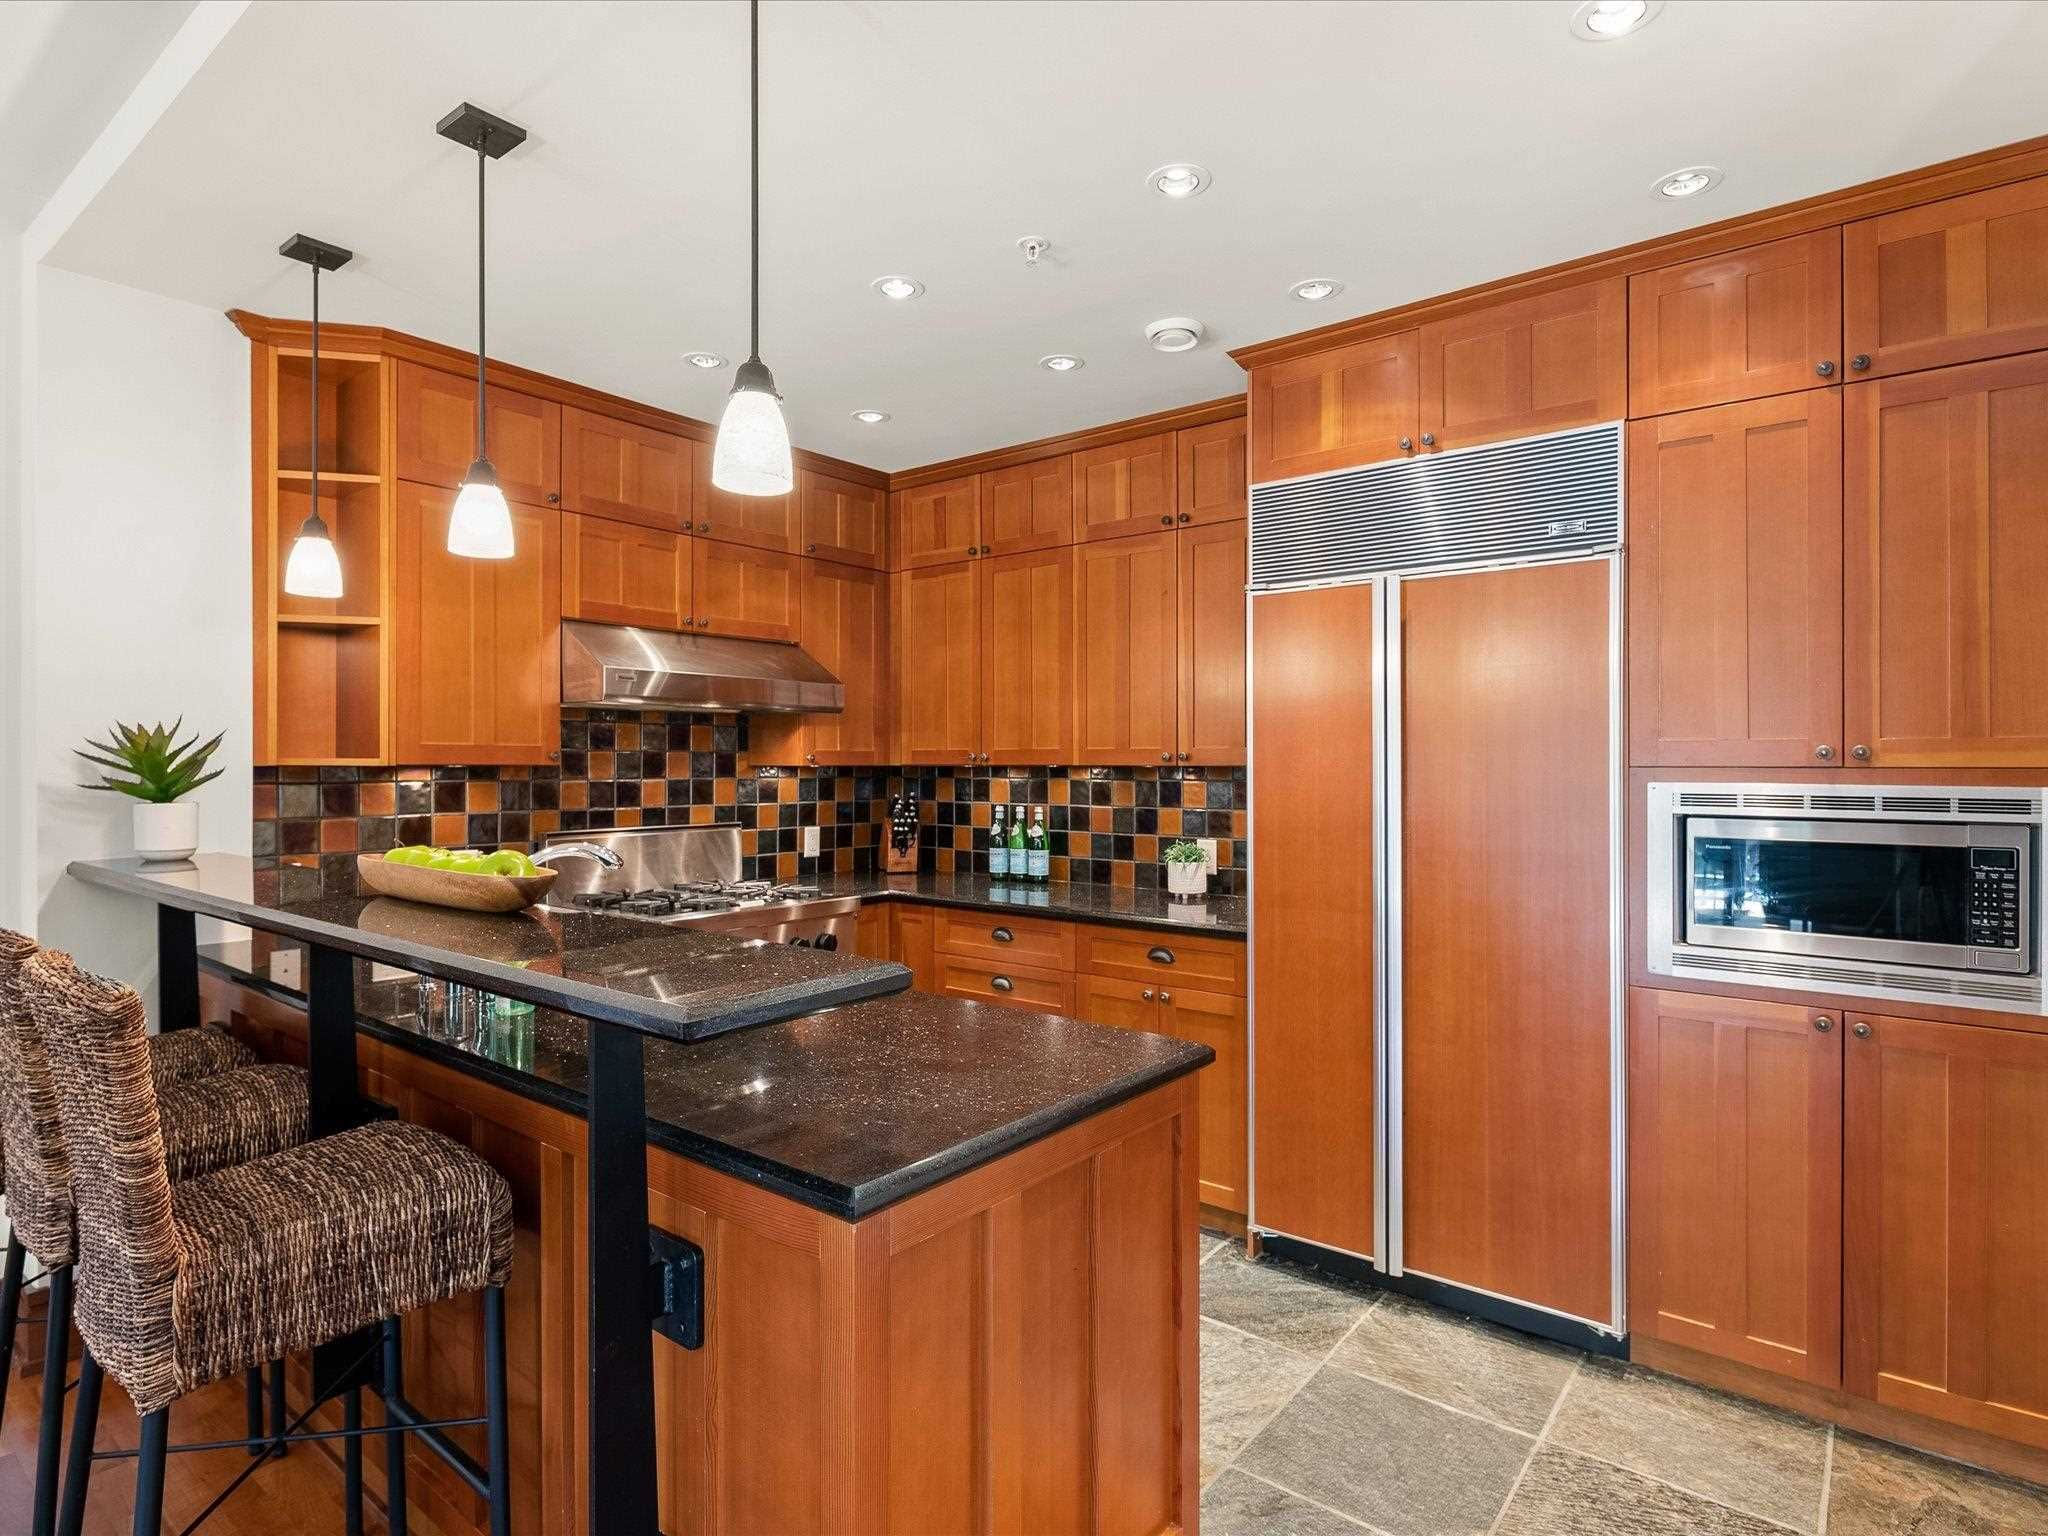 Photo 6: Photos: 4 2500 TALUSWOOD PLACE in Whistler: Nordic Townhouse for sale : MLS®# R2593995